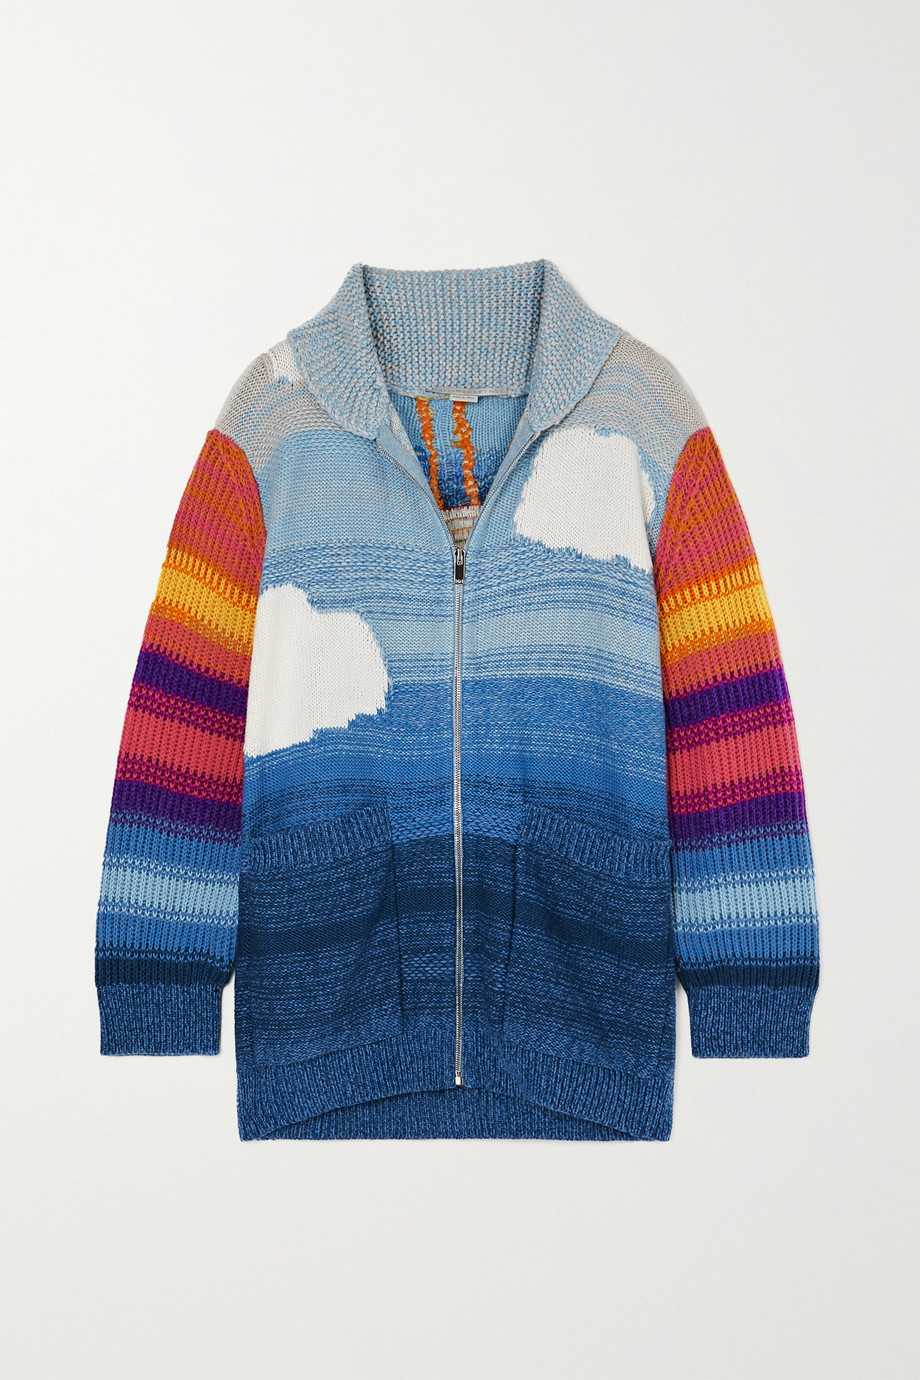 Stella McCartney Kind intarsia wool and cotton-blend cardigan